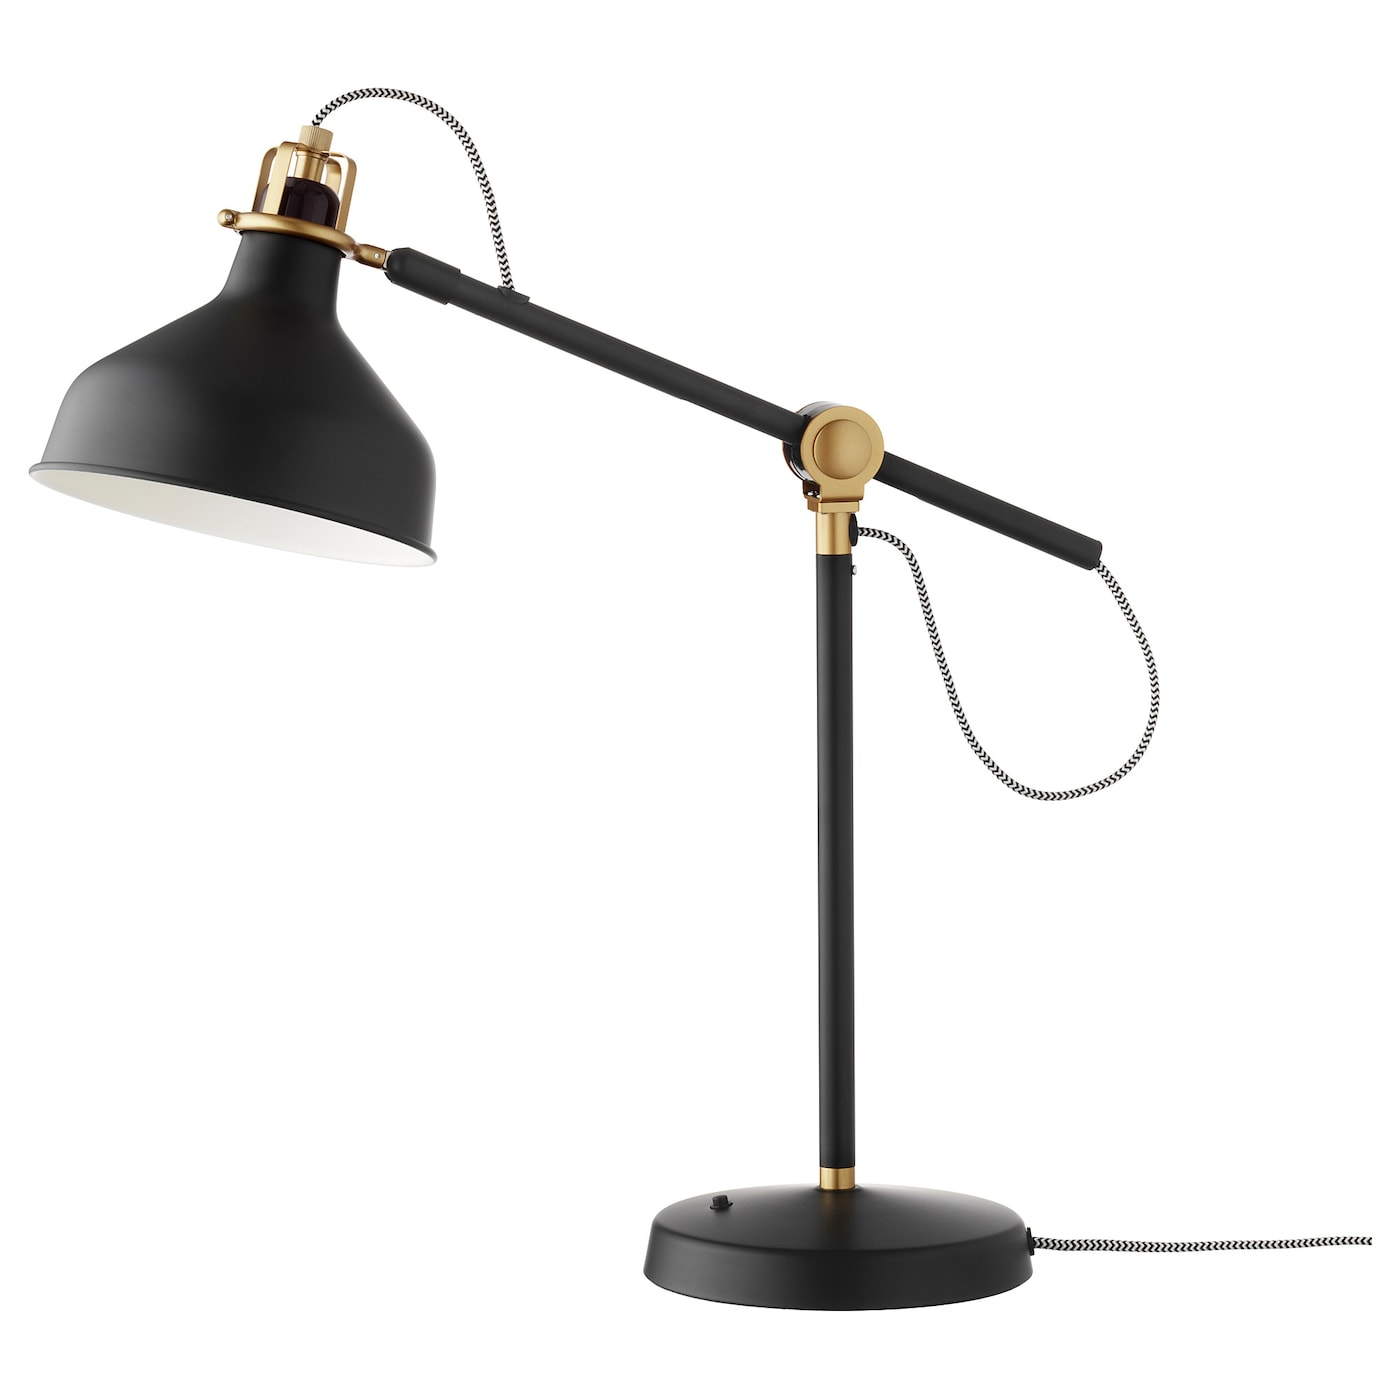 IKEA RANARP work lamp Provides directional light, great for reading.